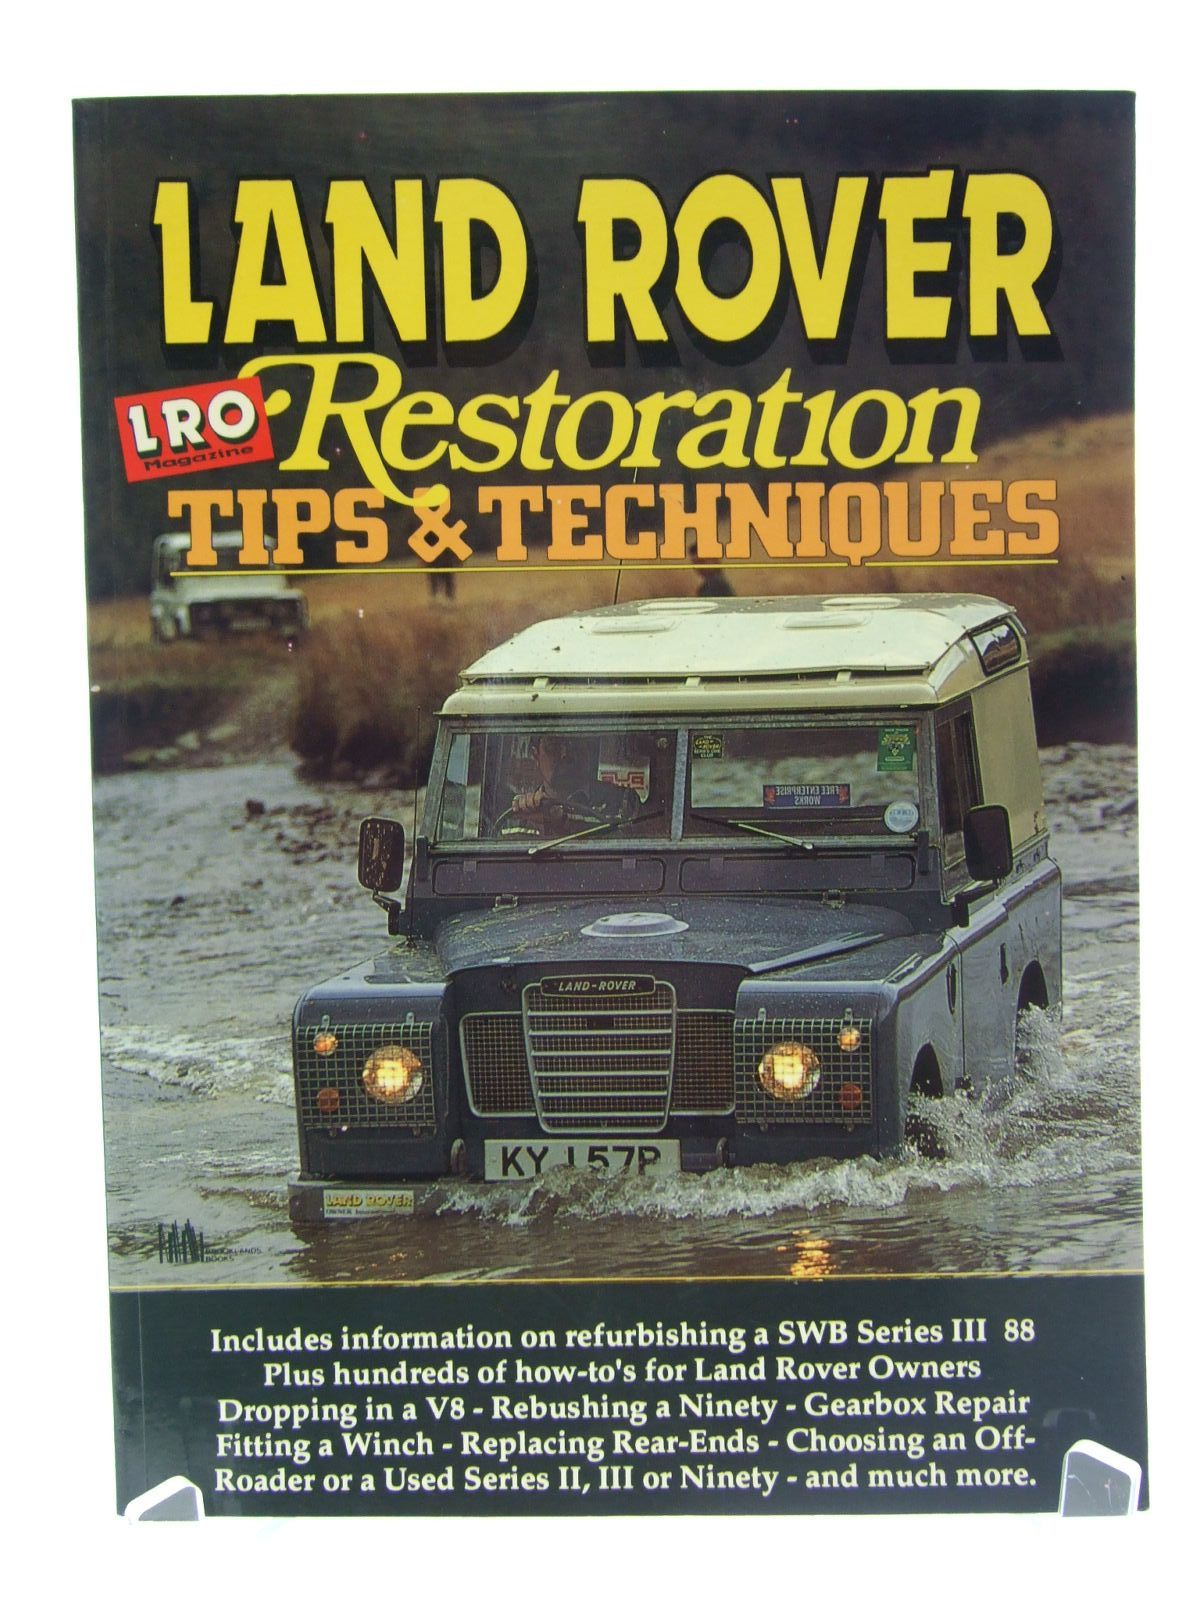 Photo of LAND ROVER RESTORATION TIPS & TECHNIQUES written by Green, Richard published by Lro Publications Ltd, Brooklands Books (STOCK CODE: 1706348)  for sale by Stella & Rose's Books